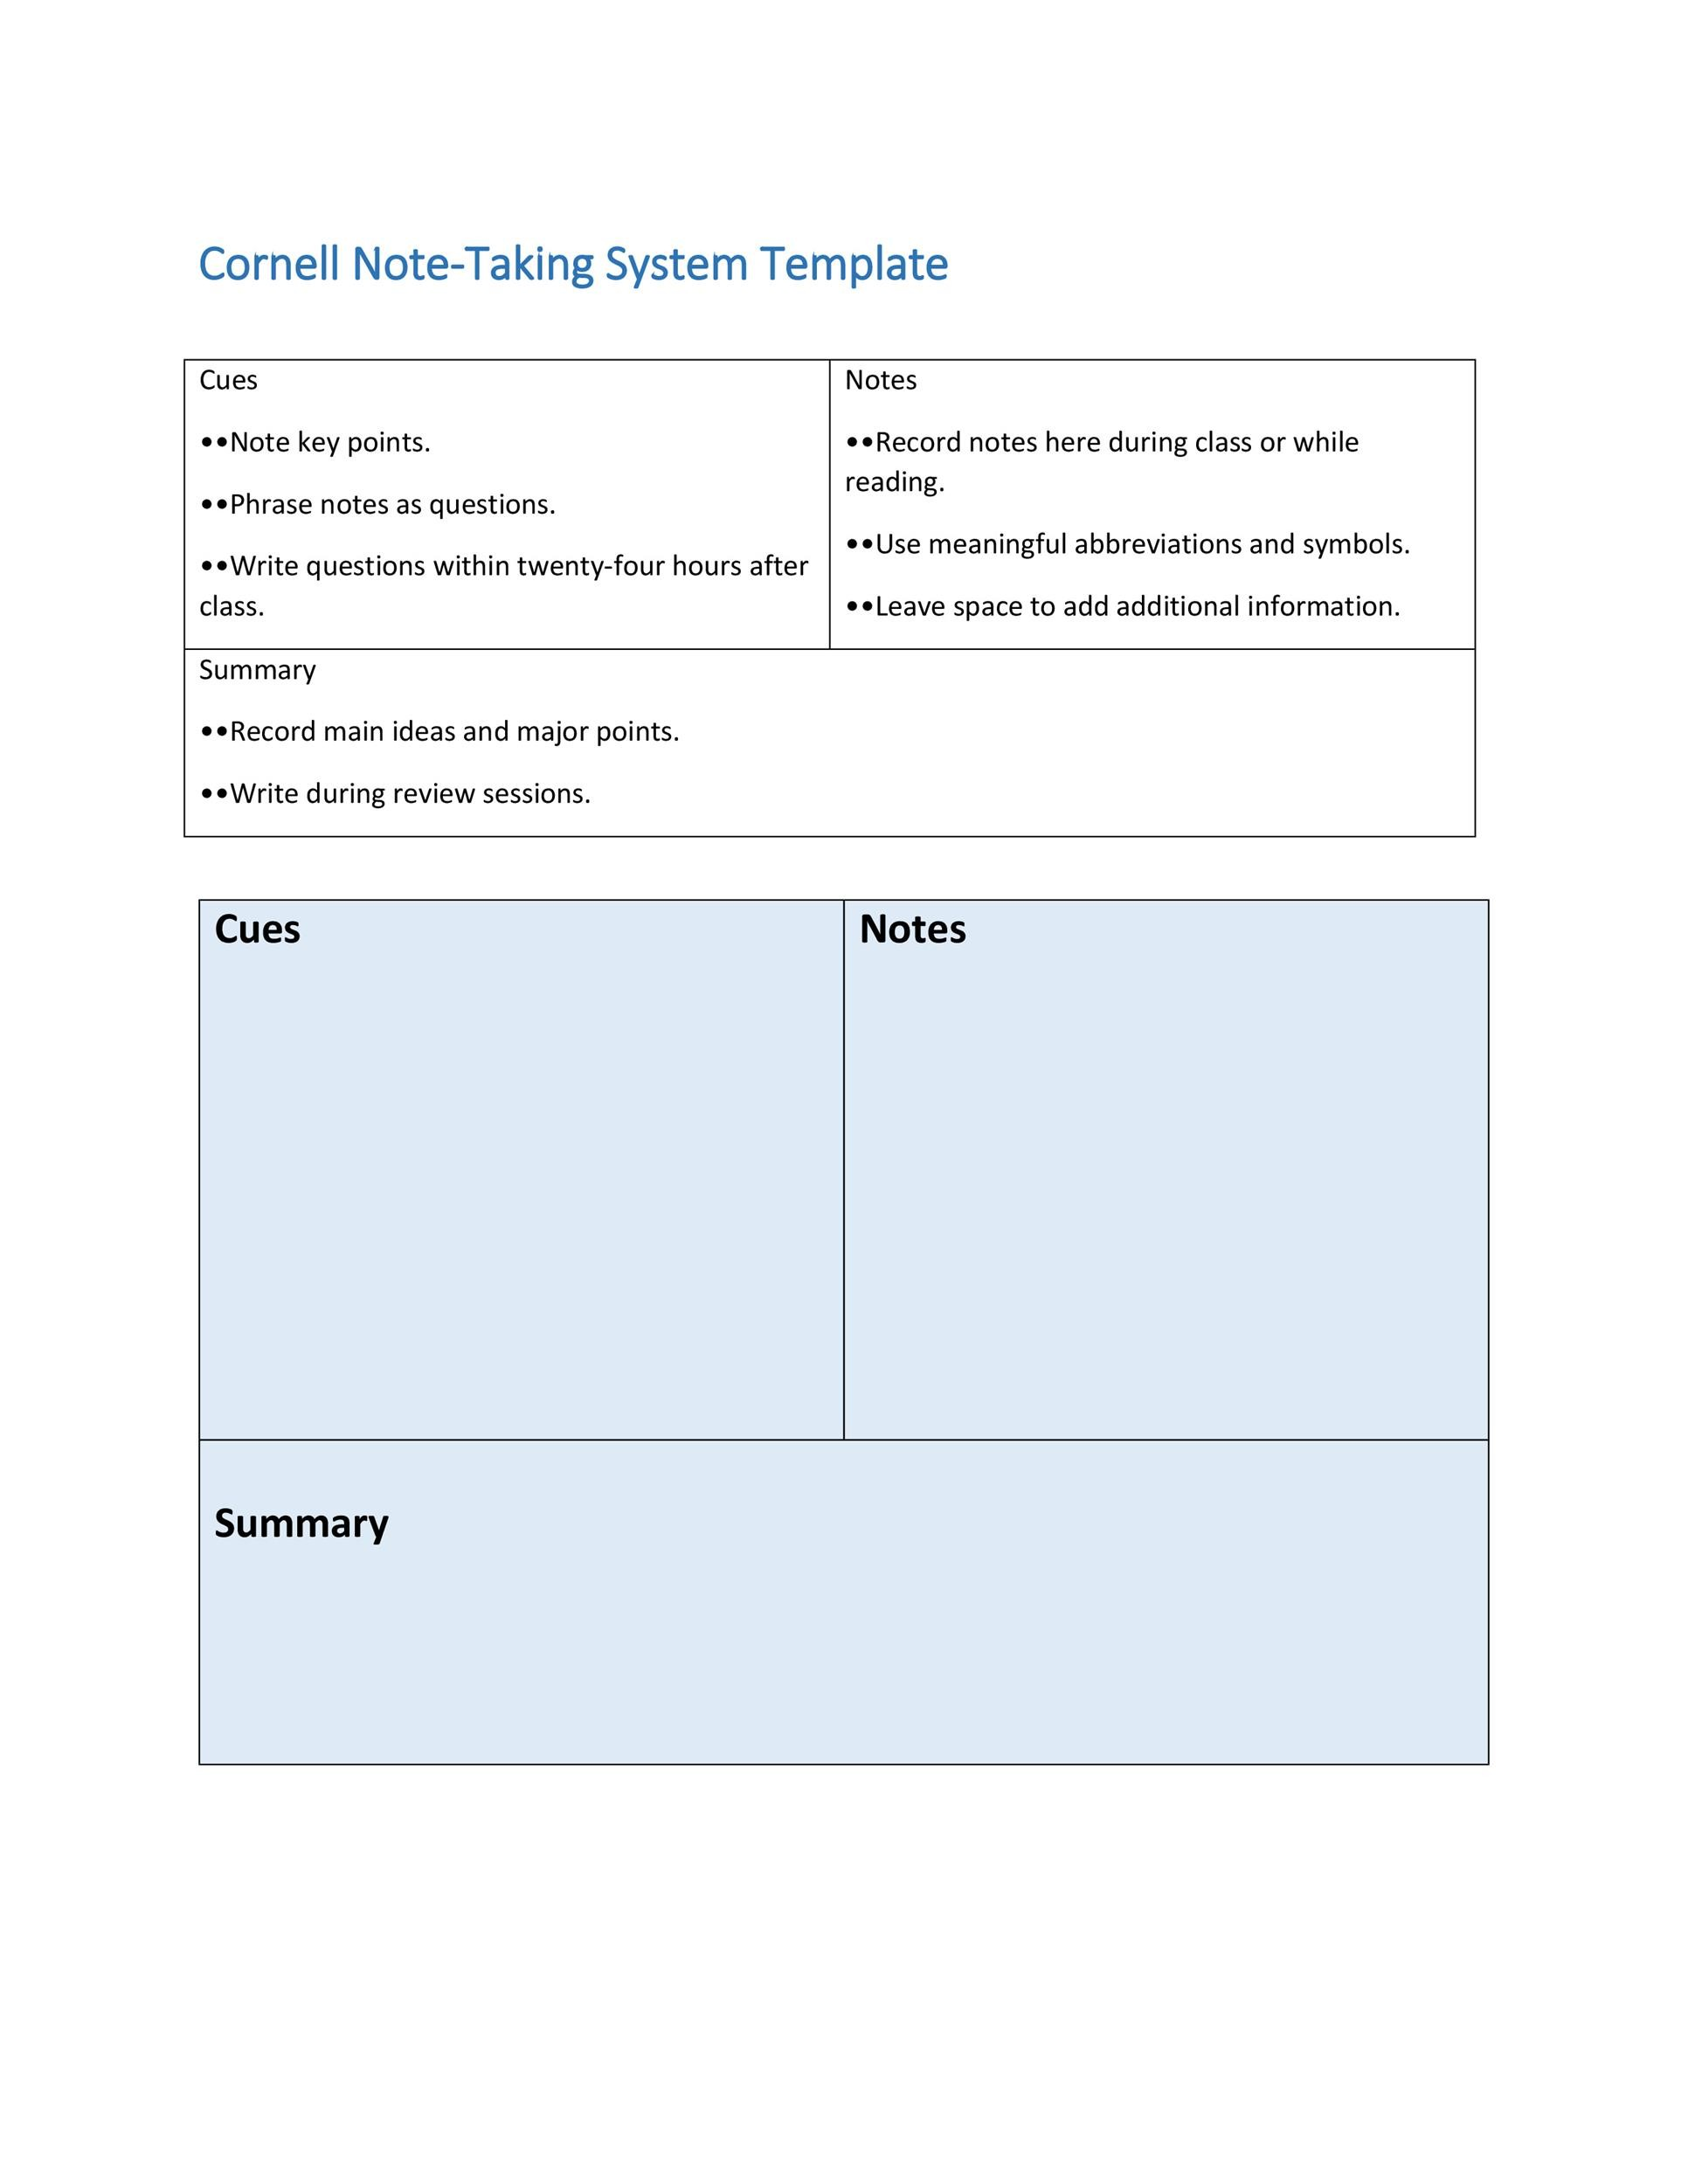 Cornell Notes Templates  Examples Word Pdf  Template Lab